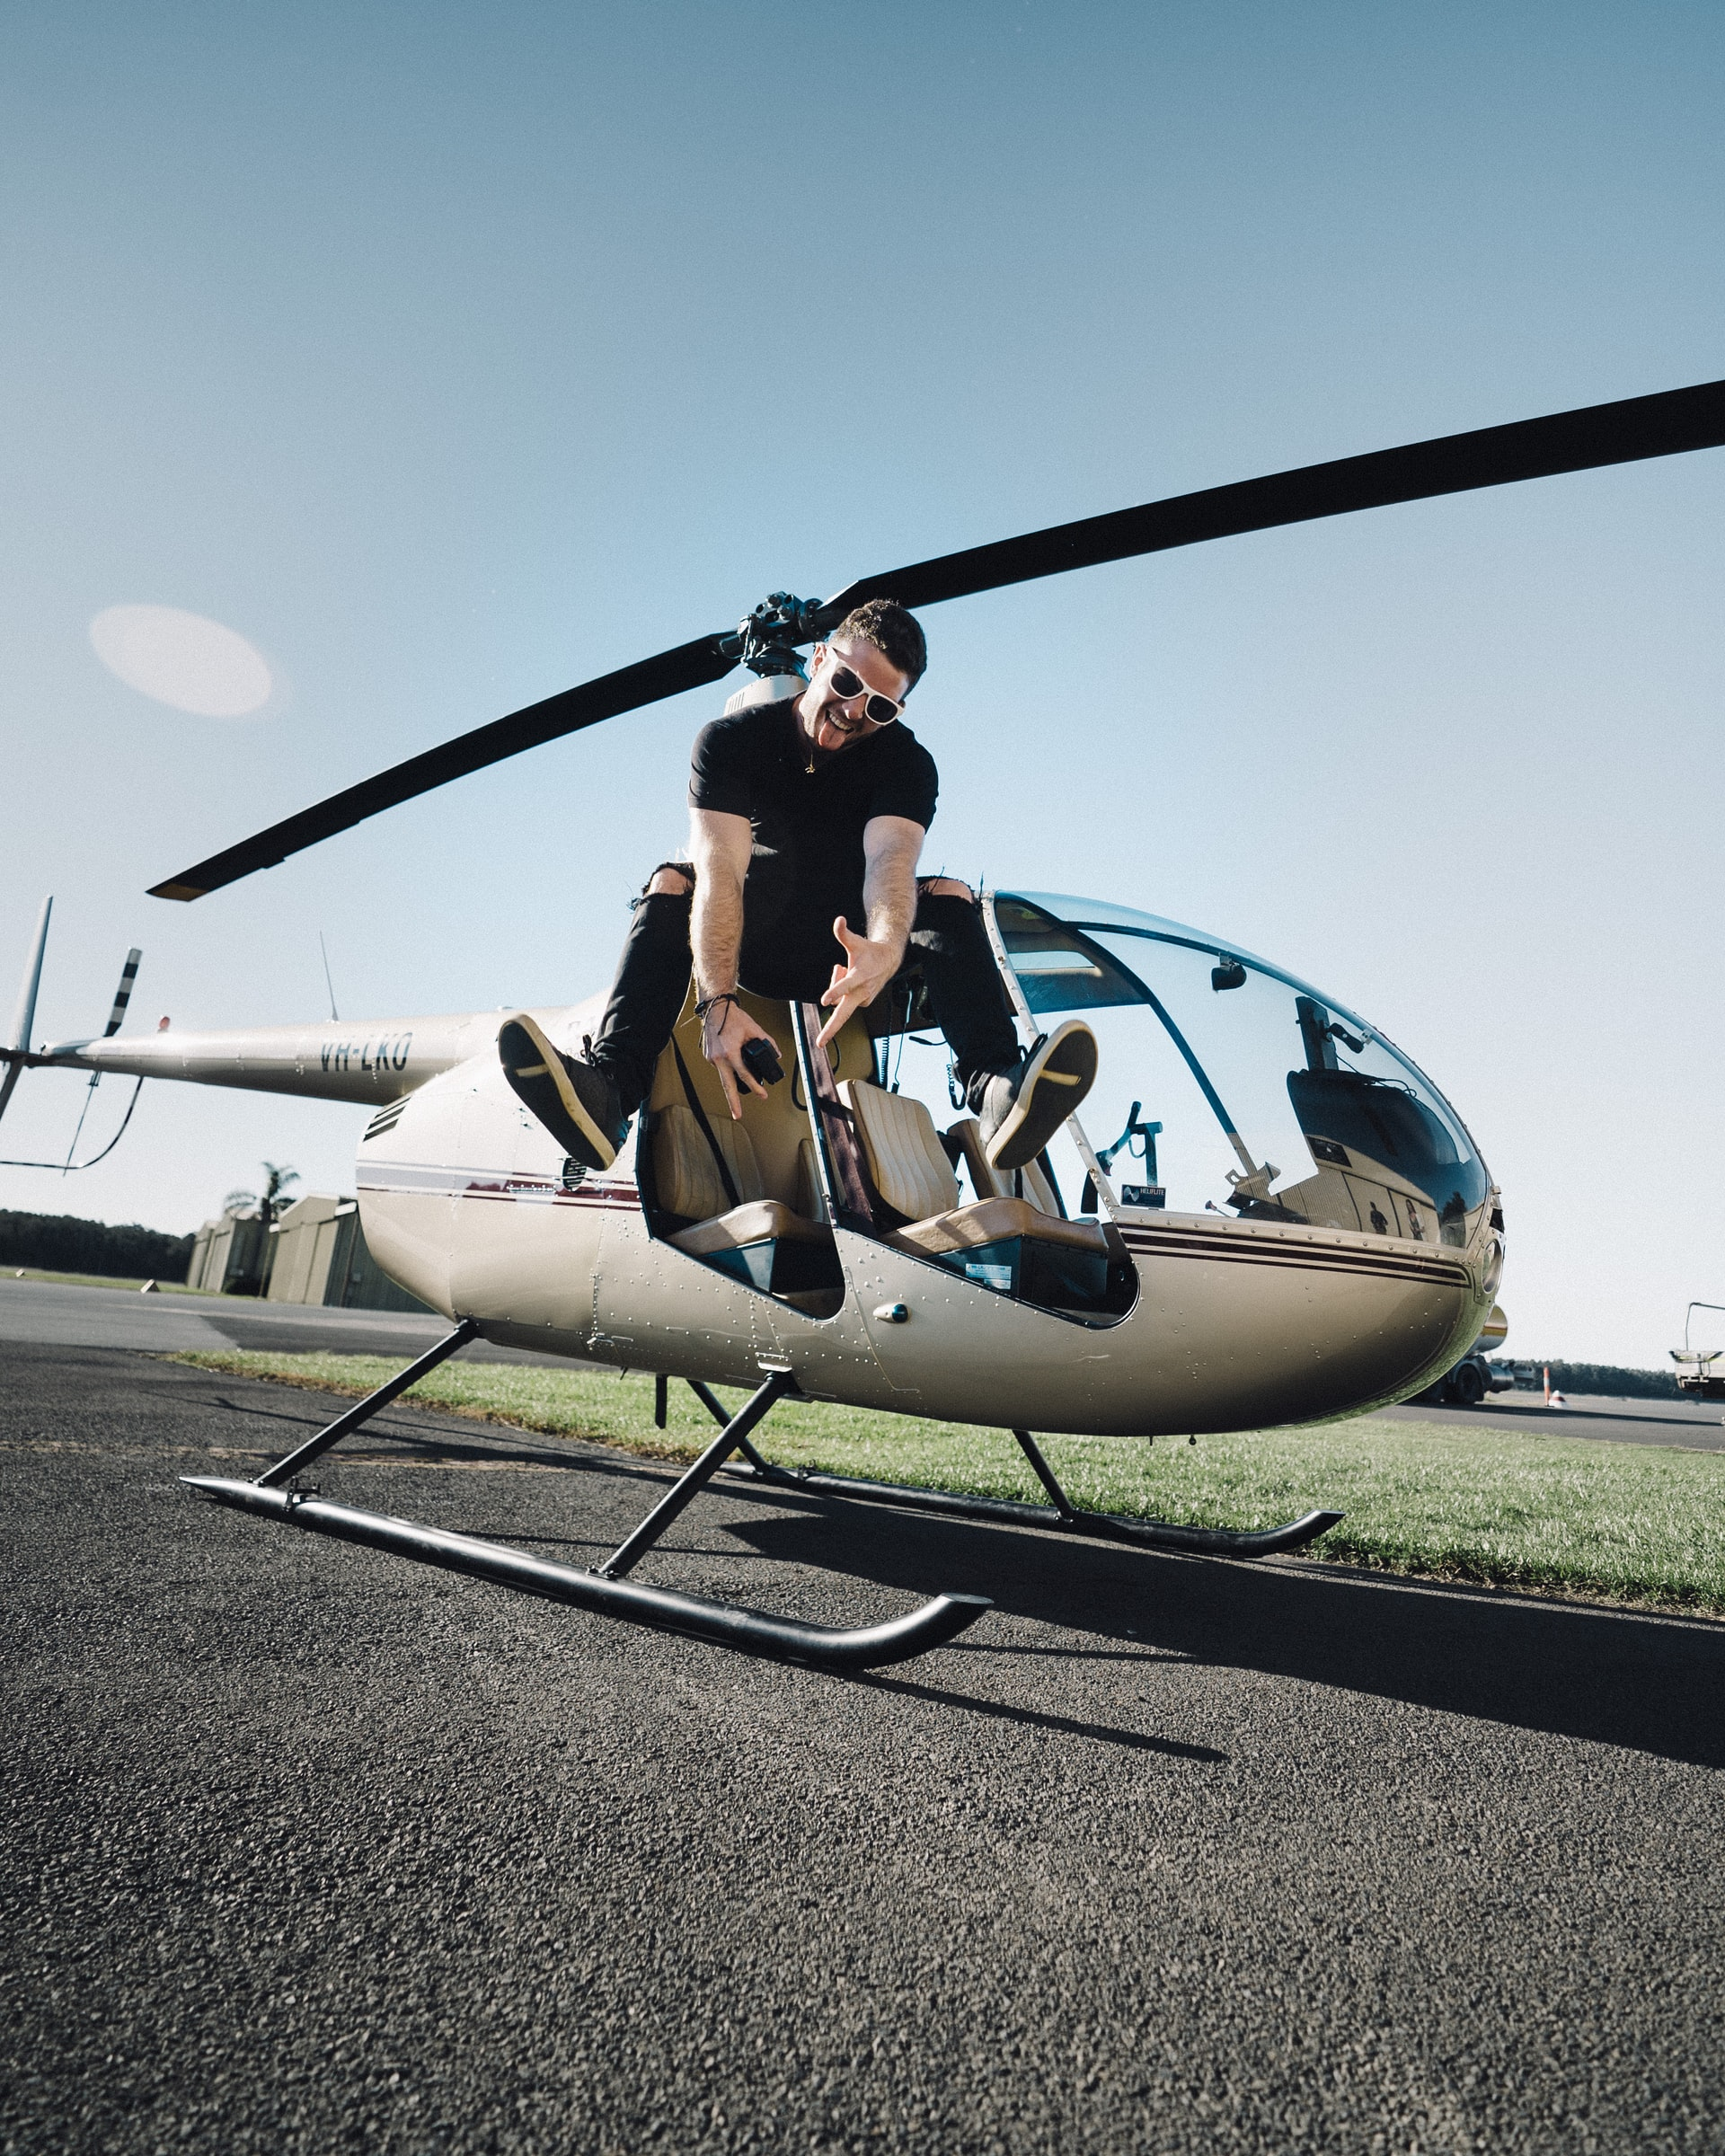 Aircraft owner happy after getting aviation finance approved for helicopter